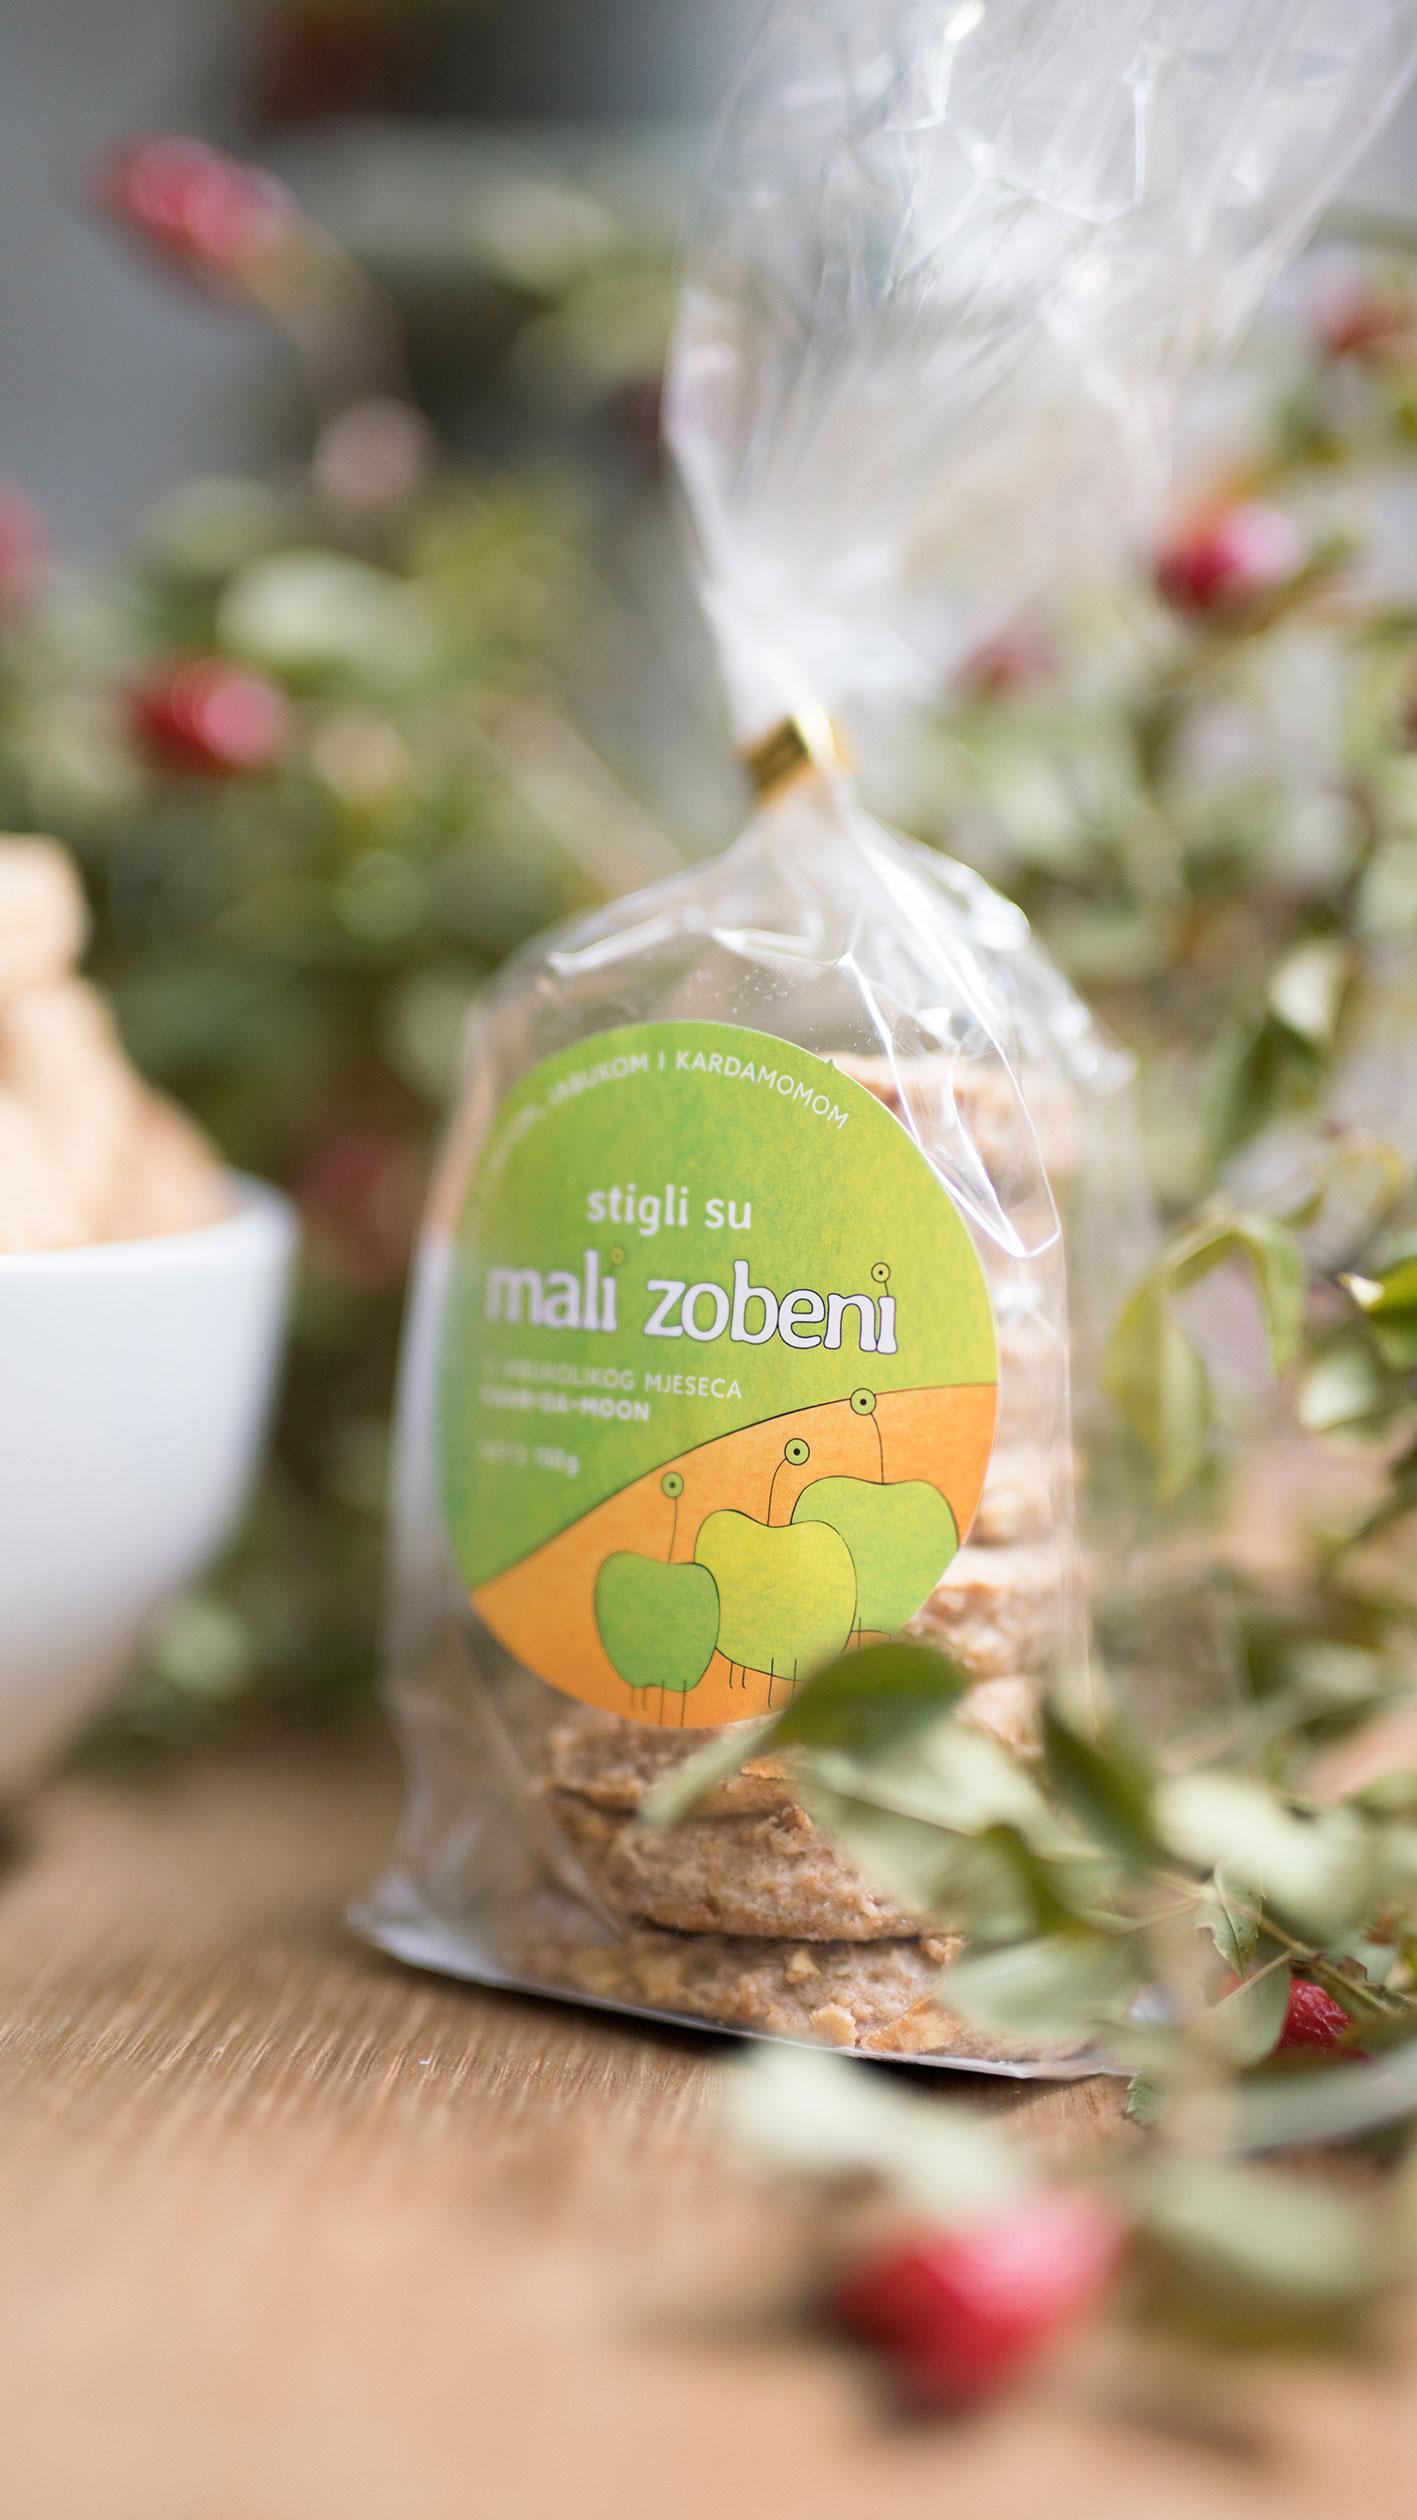 masavukmanovic.com - mali zobeni packaging 06